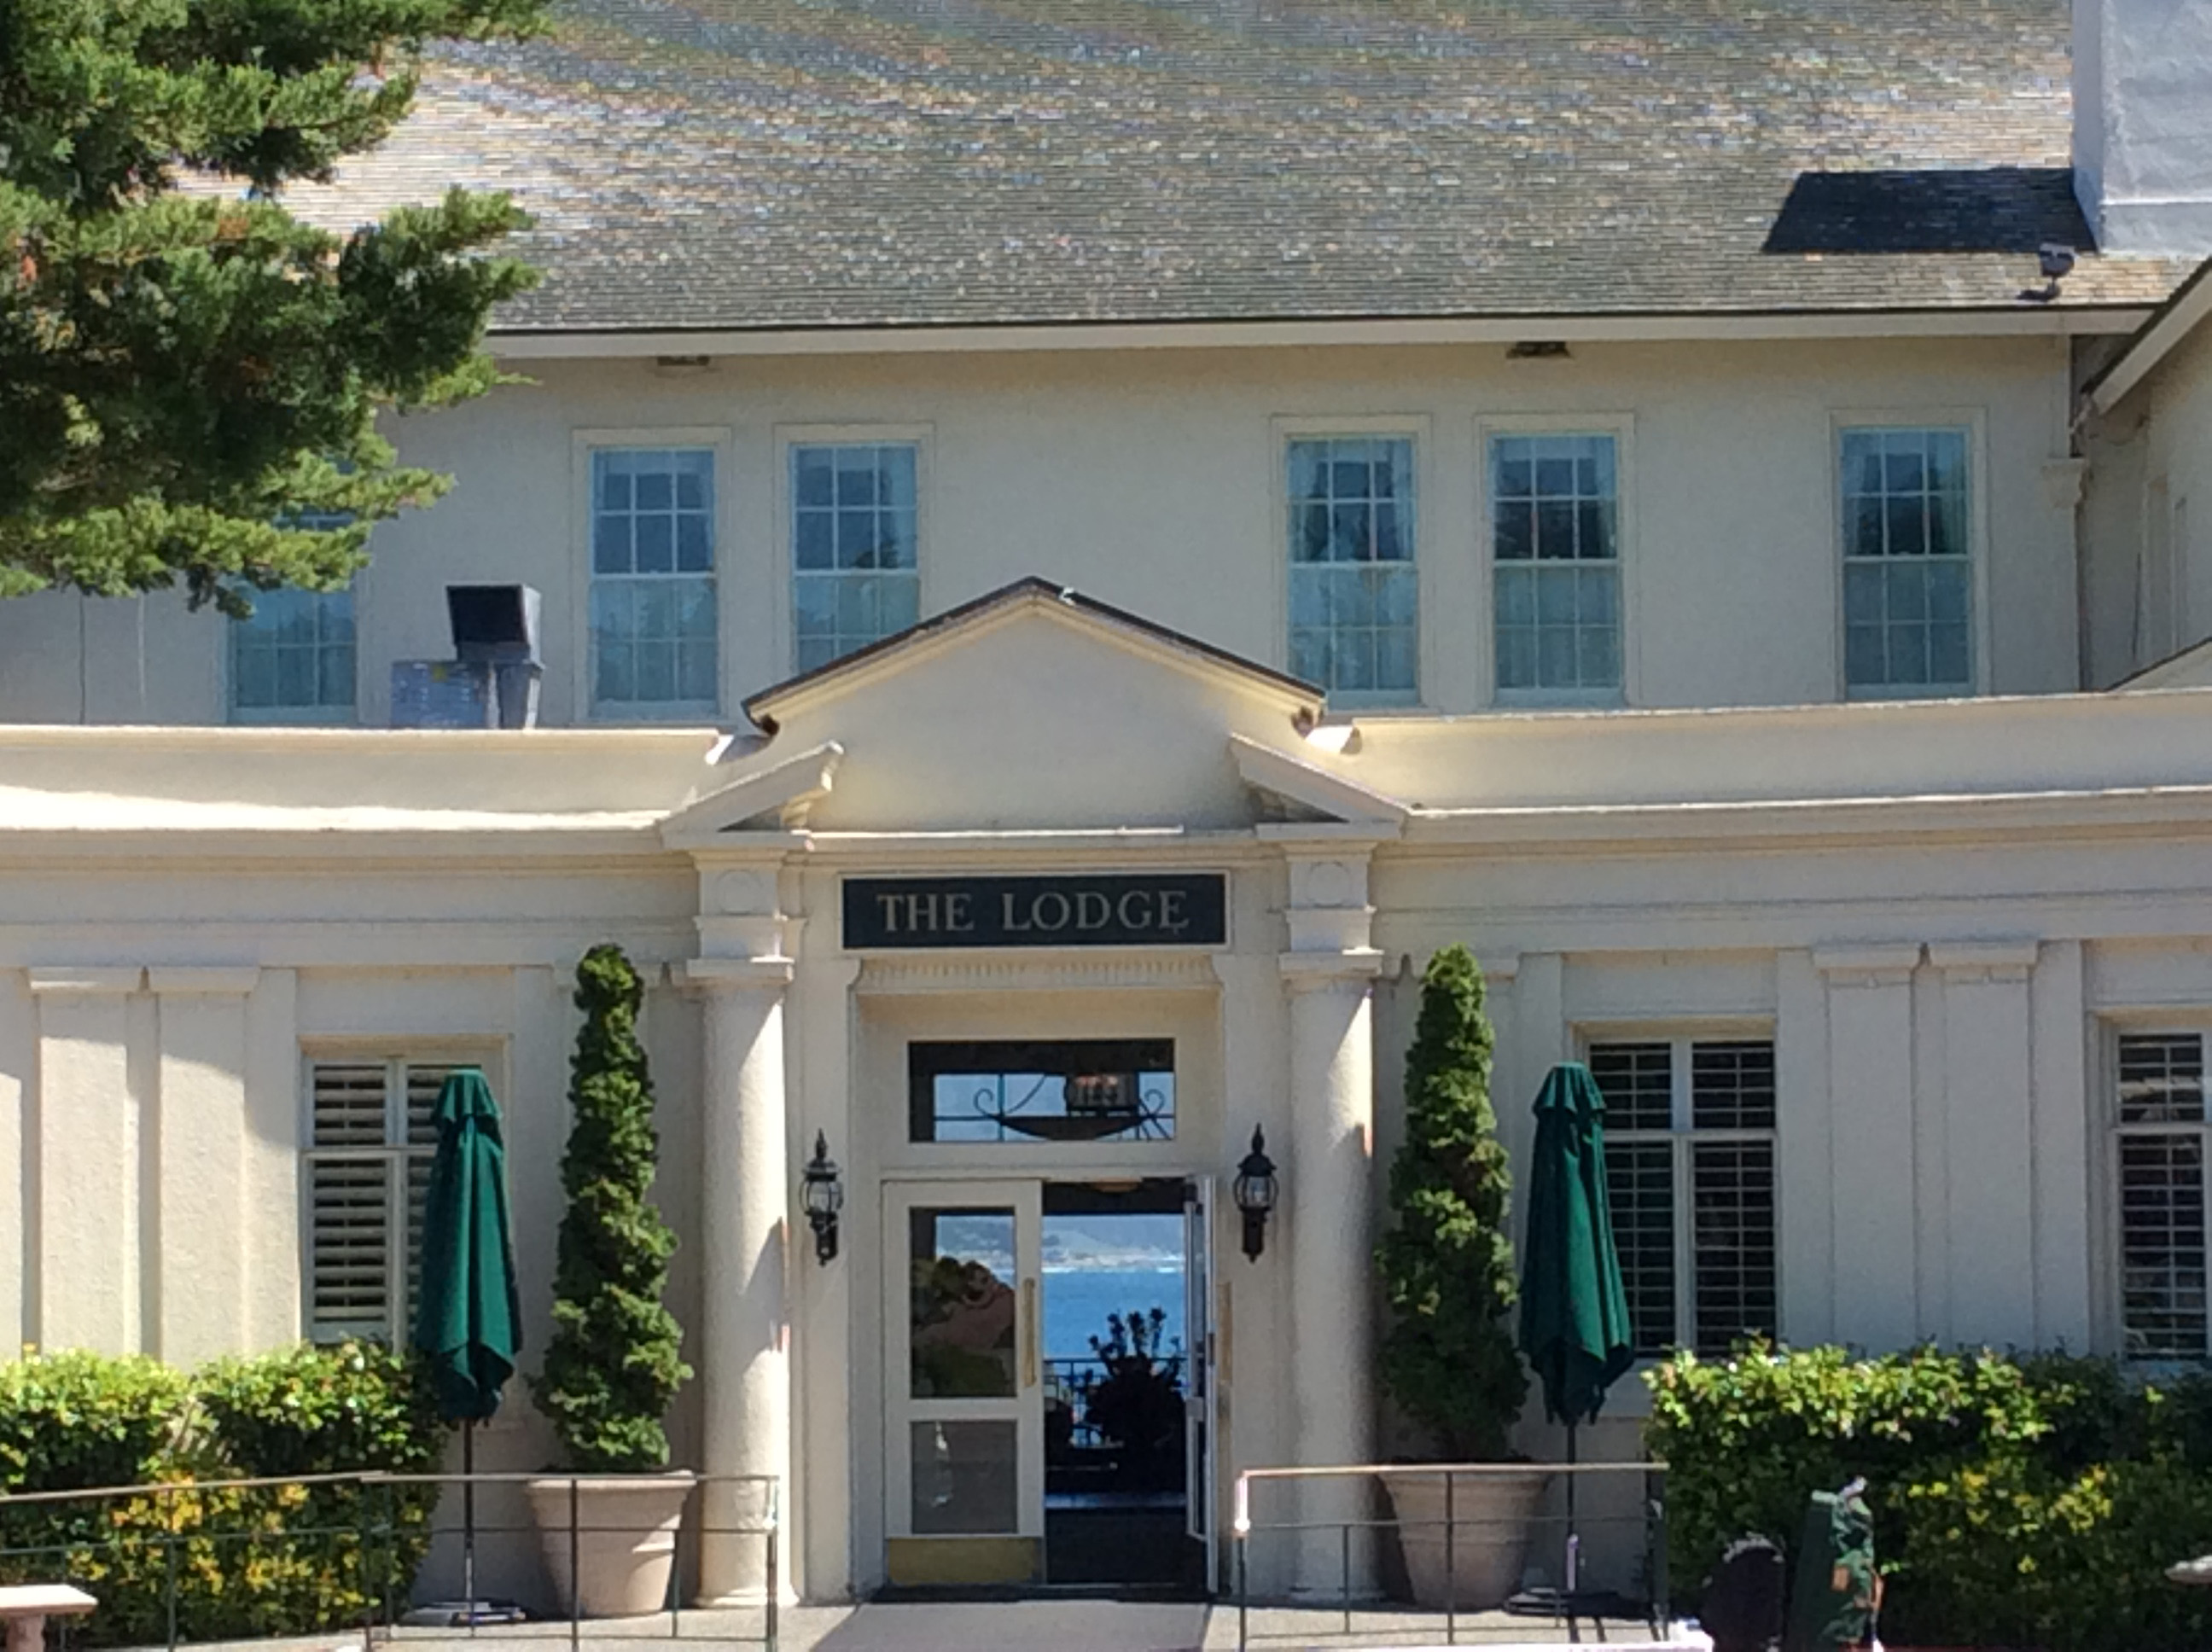 The Lodge at Pebble Beach Exclusive Hotel and Golf Links on Stillwater Cove in Pebble Beach, Ca